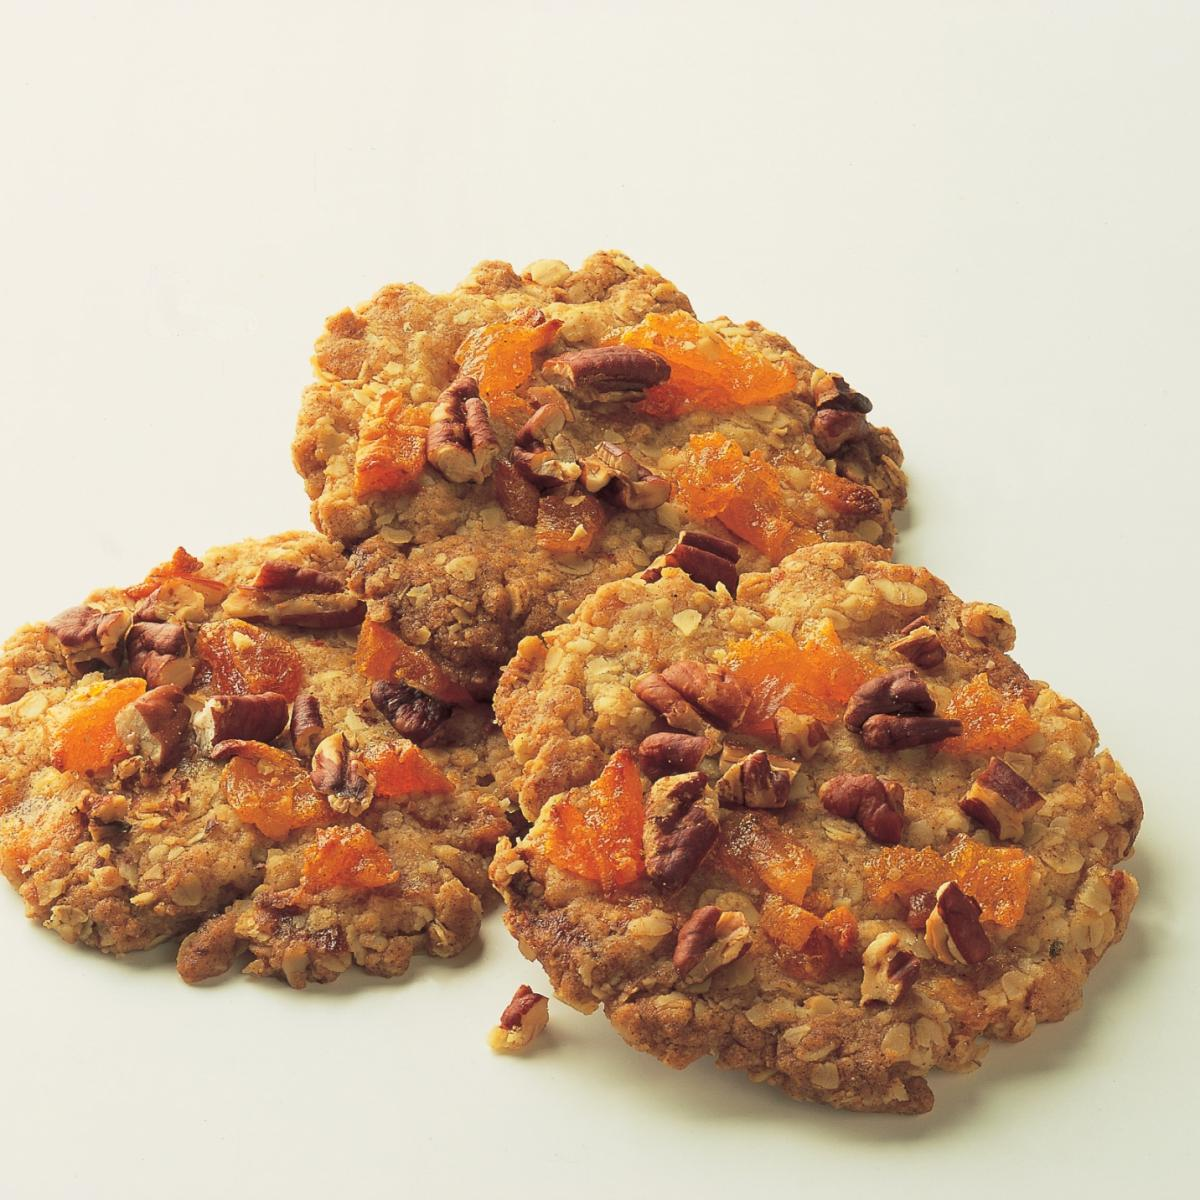 Baking apricot and nut crunchies